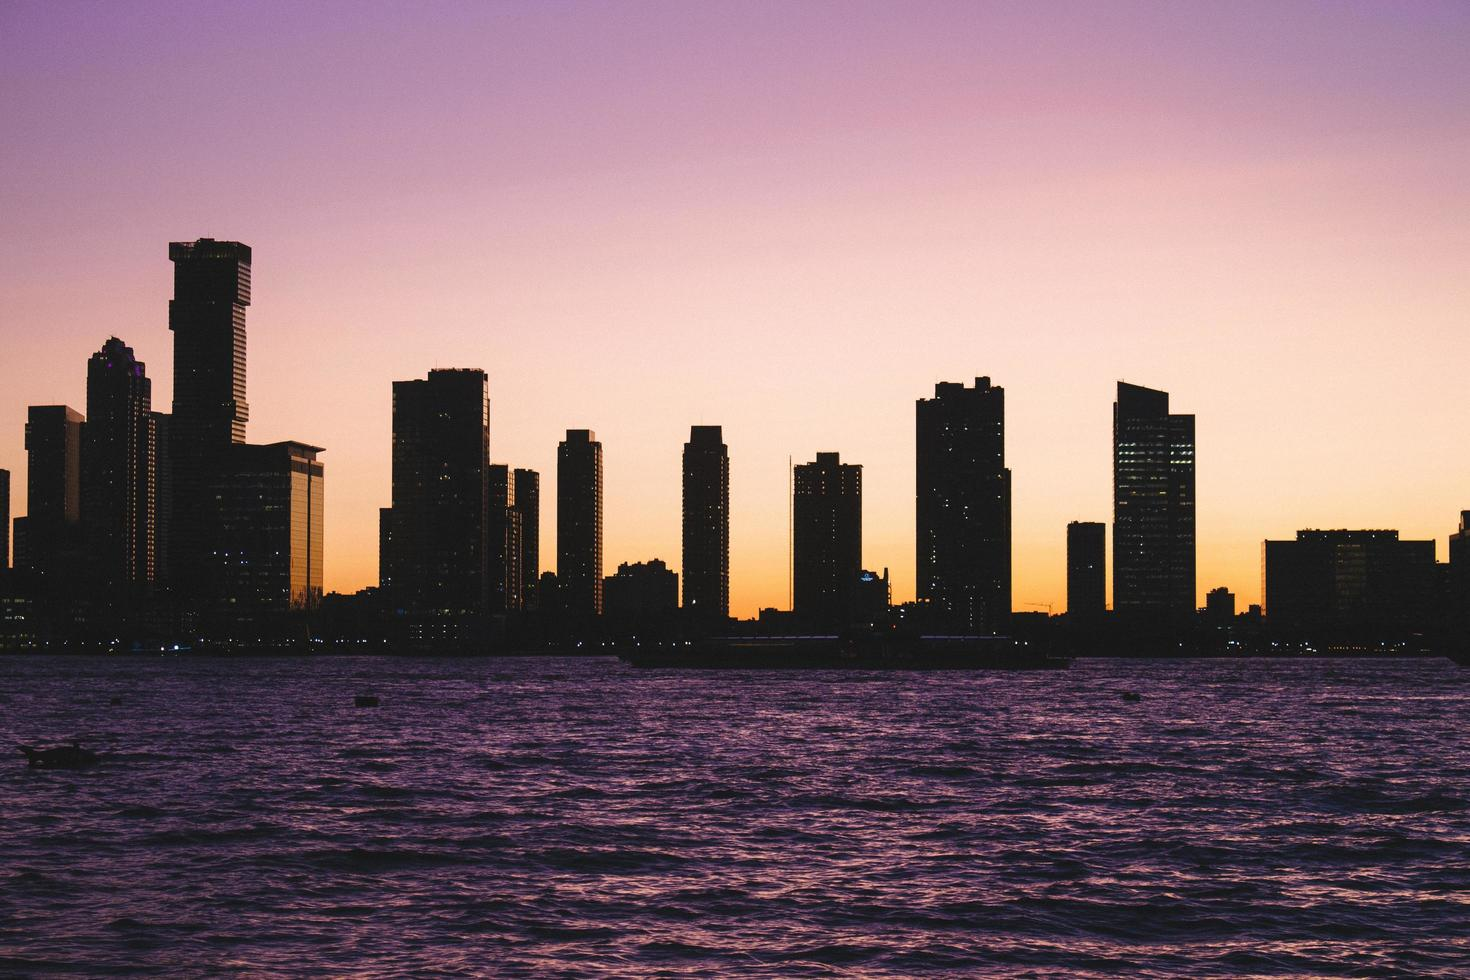 City skyline and water against purple sky photo